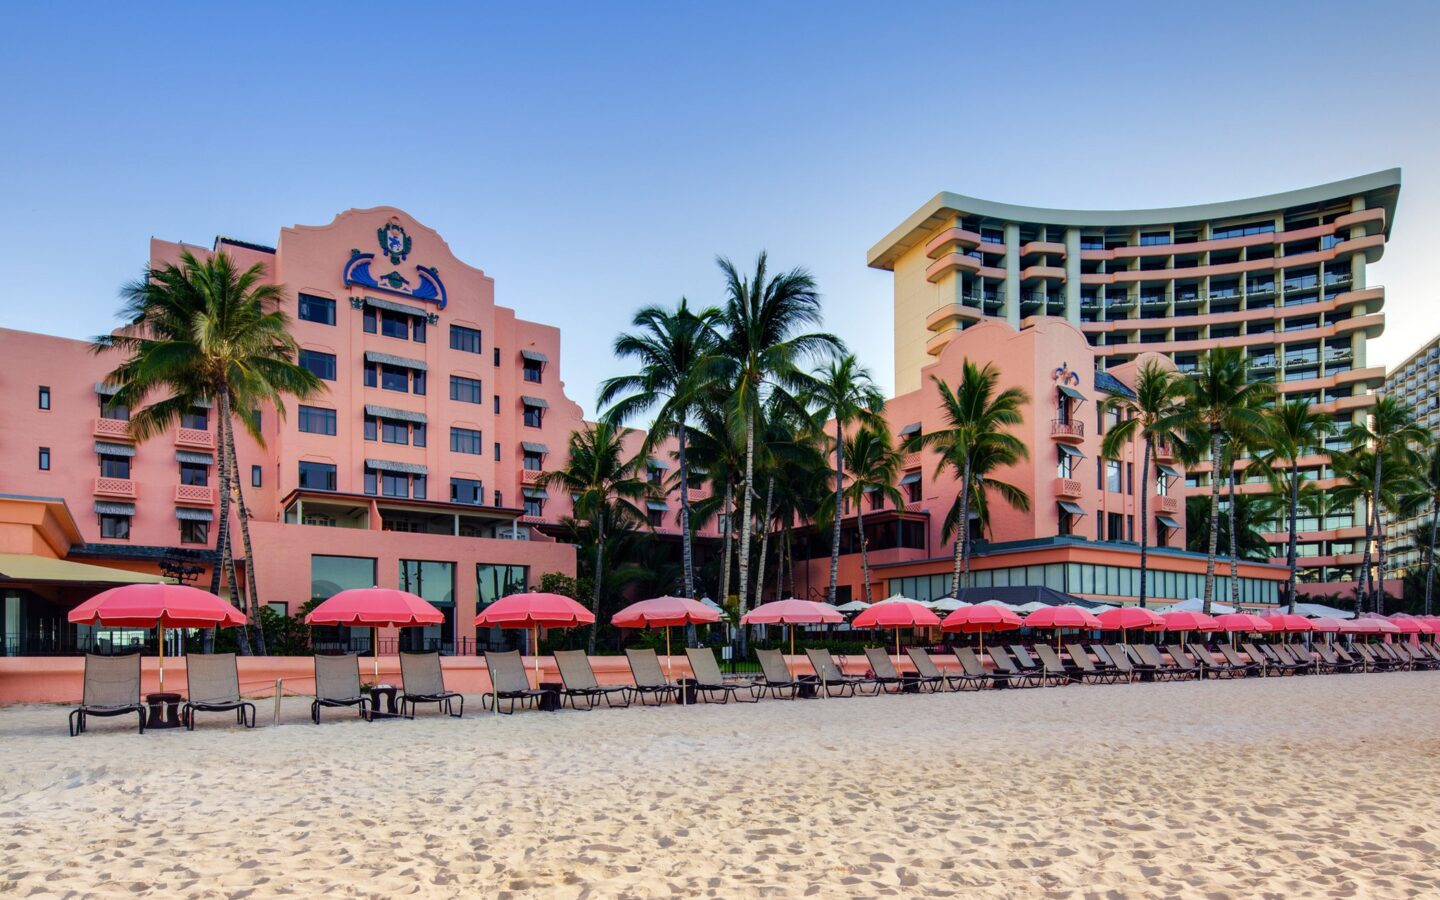 lounge chairs setup on beach in front of The Royal Hawaiian